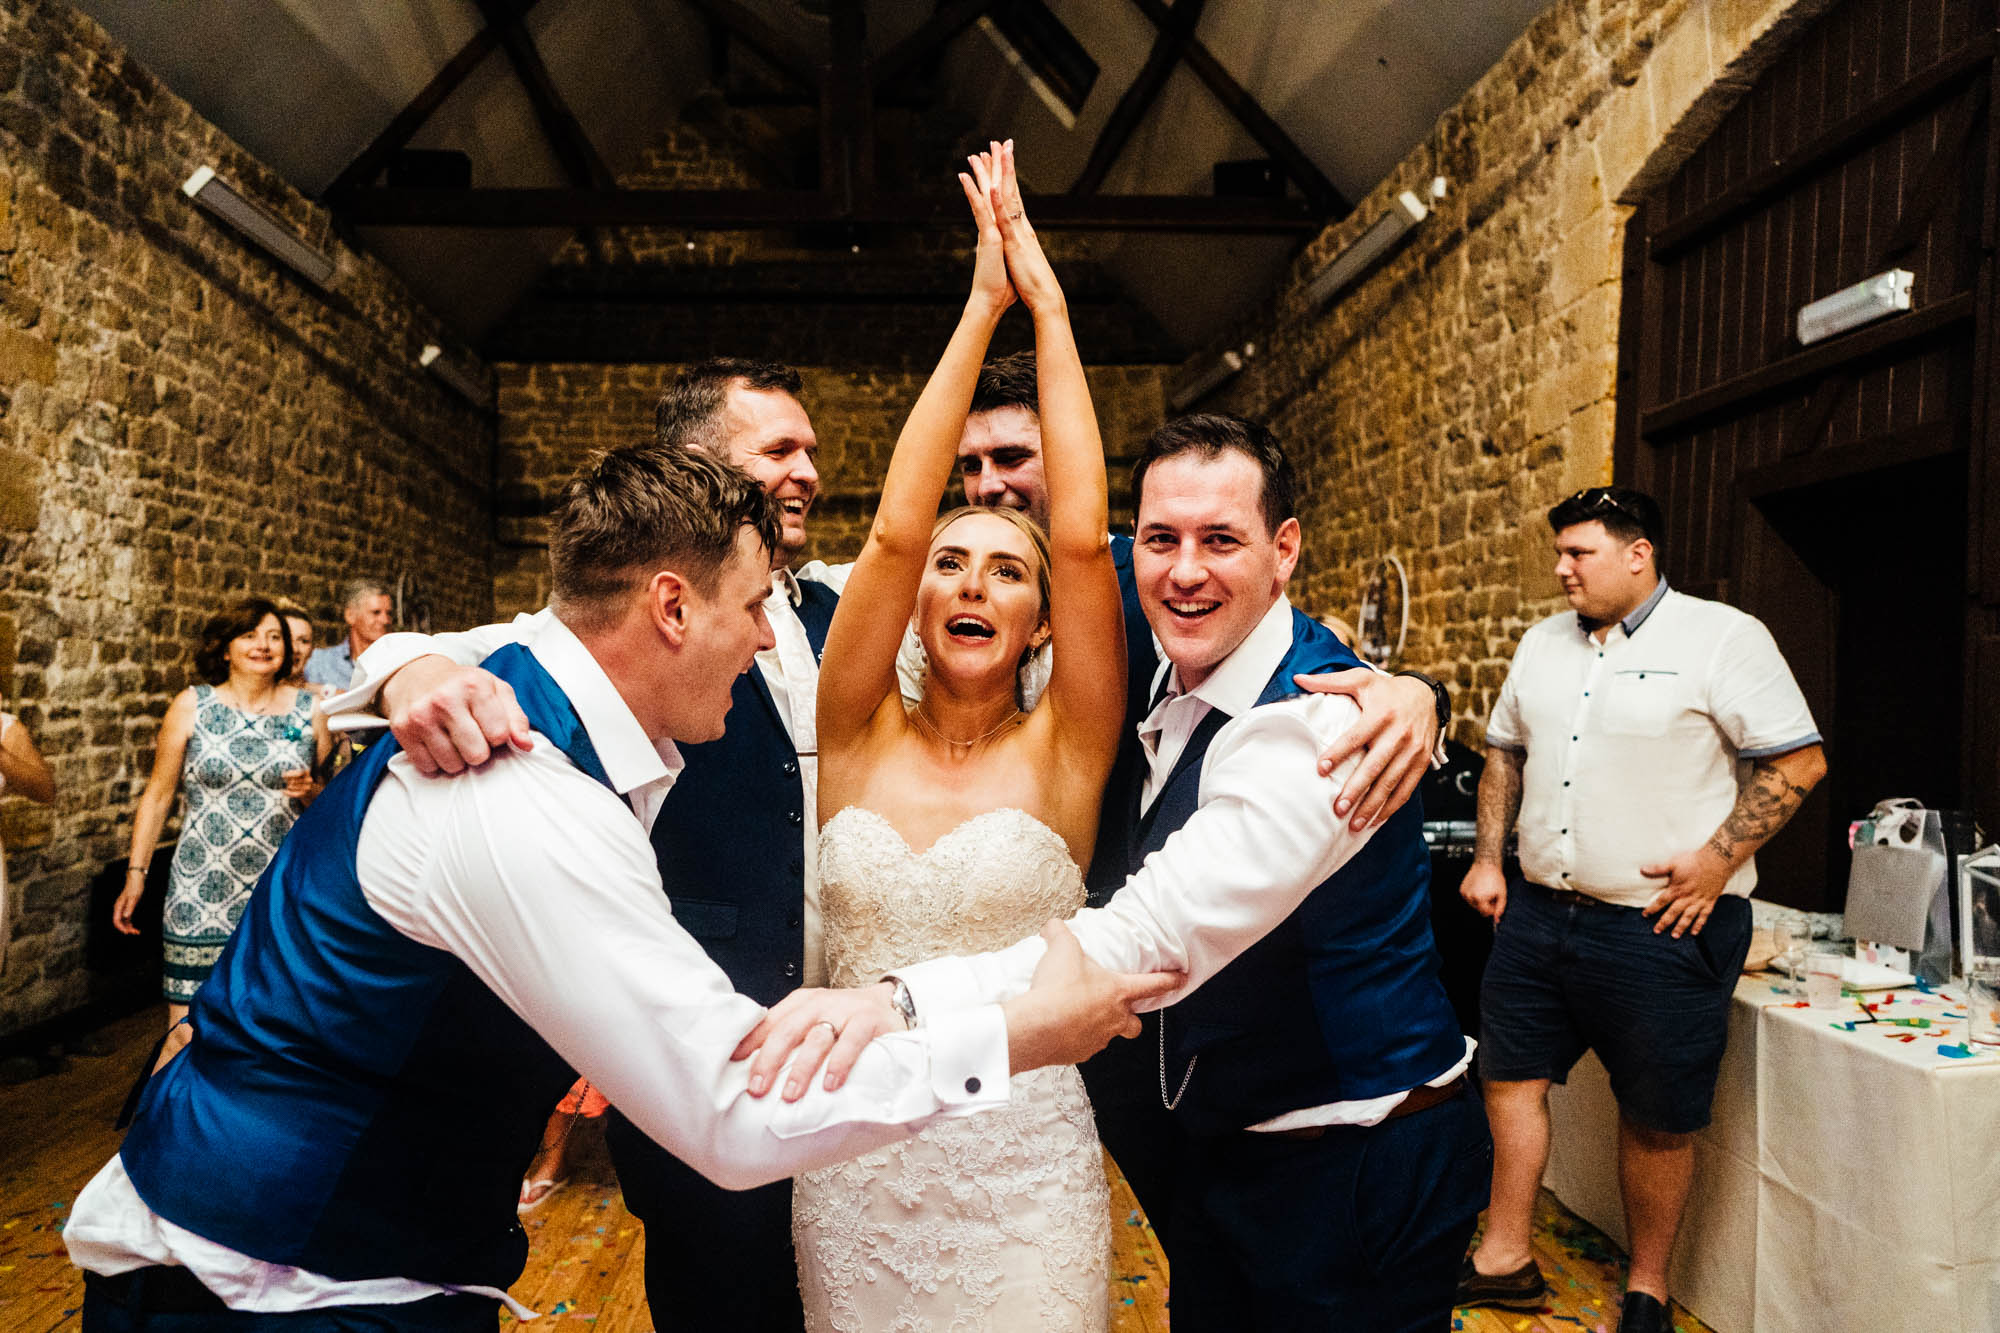 wedding-at-the-barns-at-hunsbury-hill-104